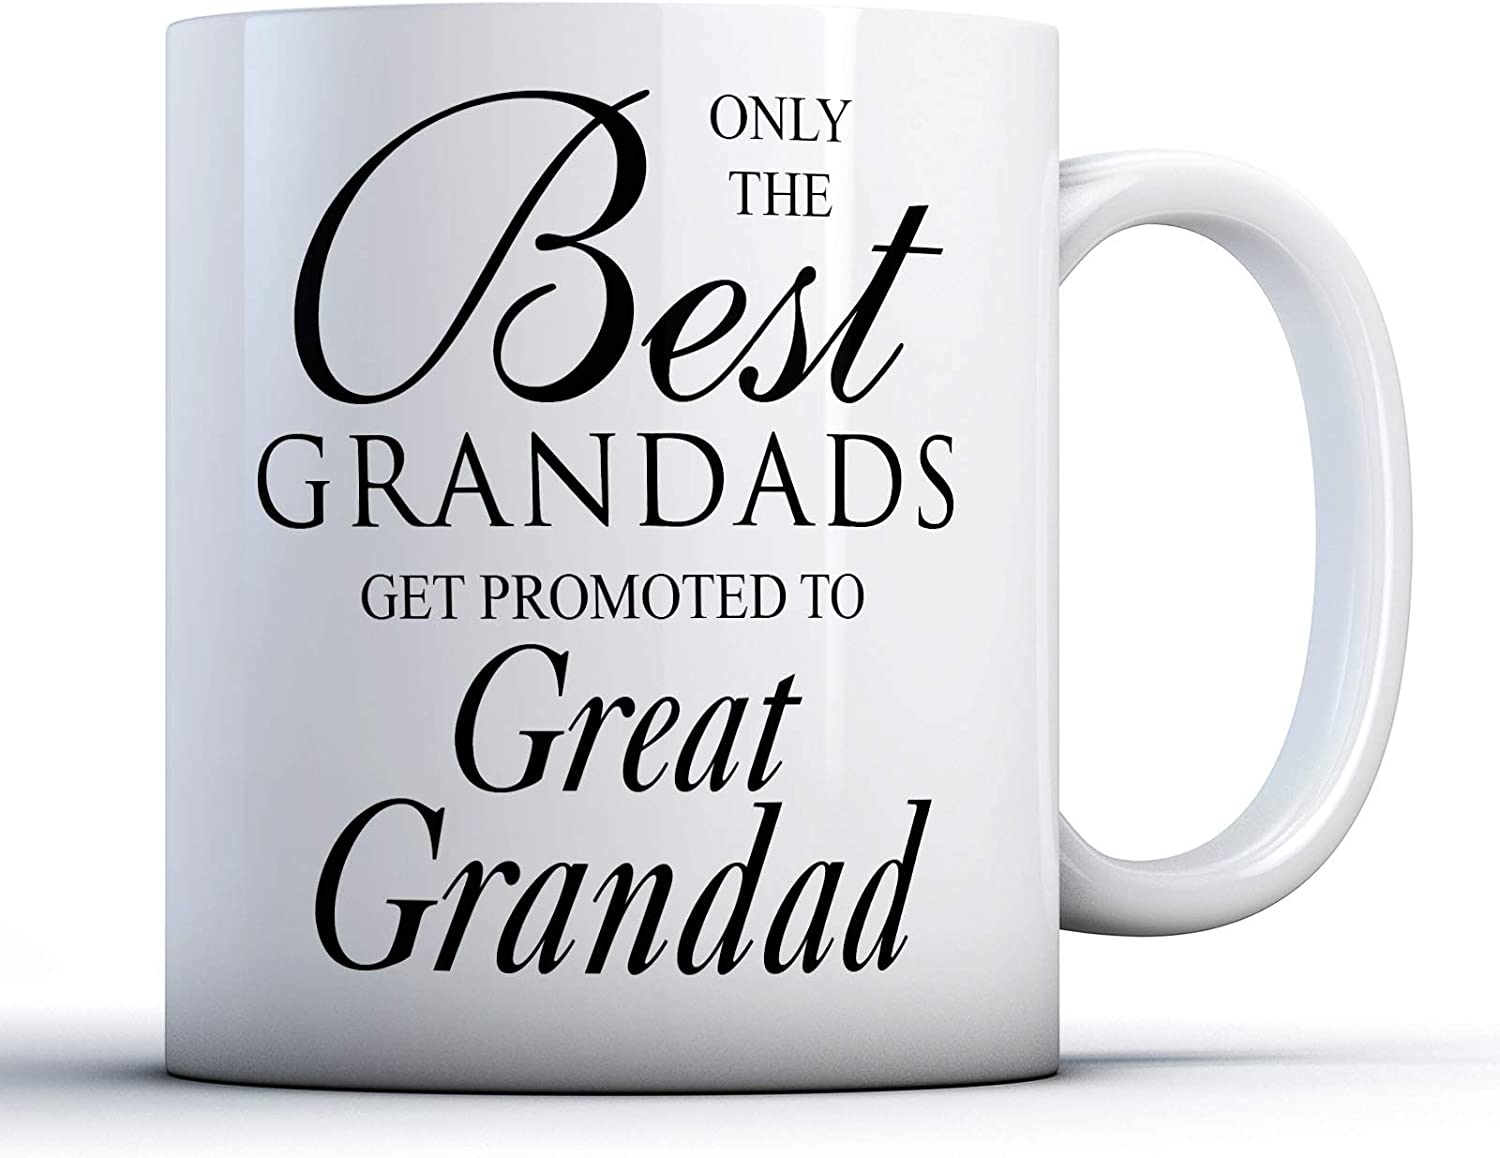 Only The Best Grandads Get Promoted To Great Grandad Printed Mug By Finger Prints Amazon Co Uk Kitchen Home